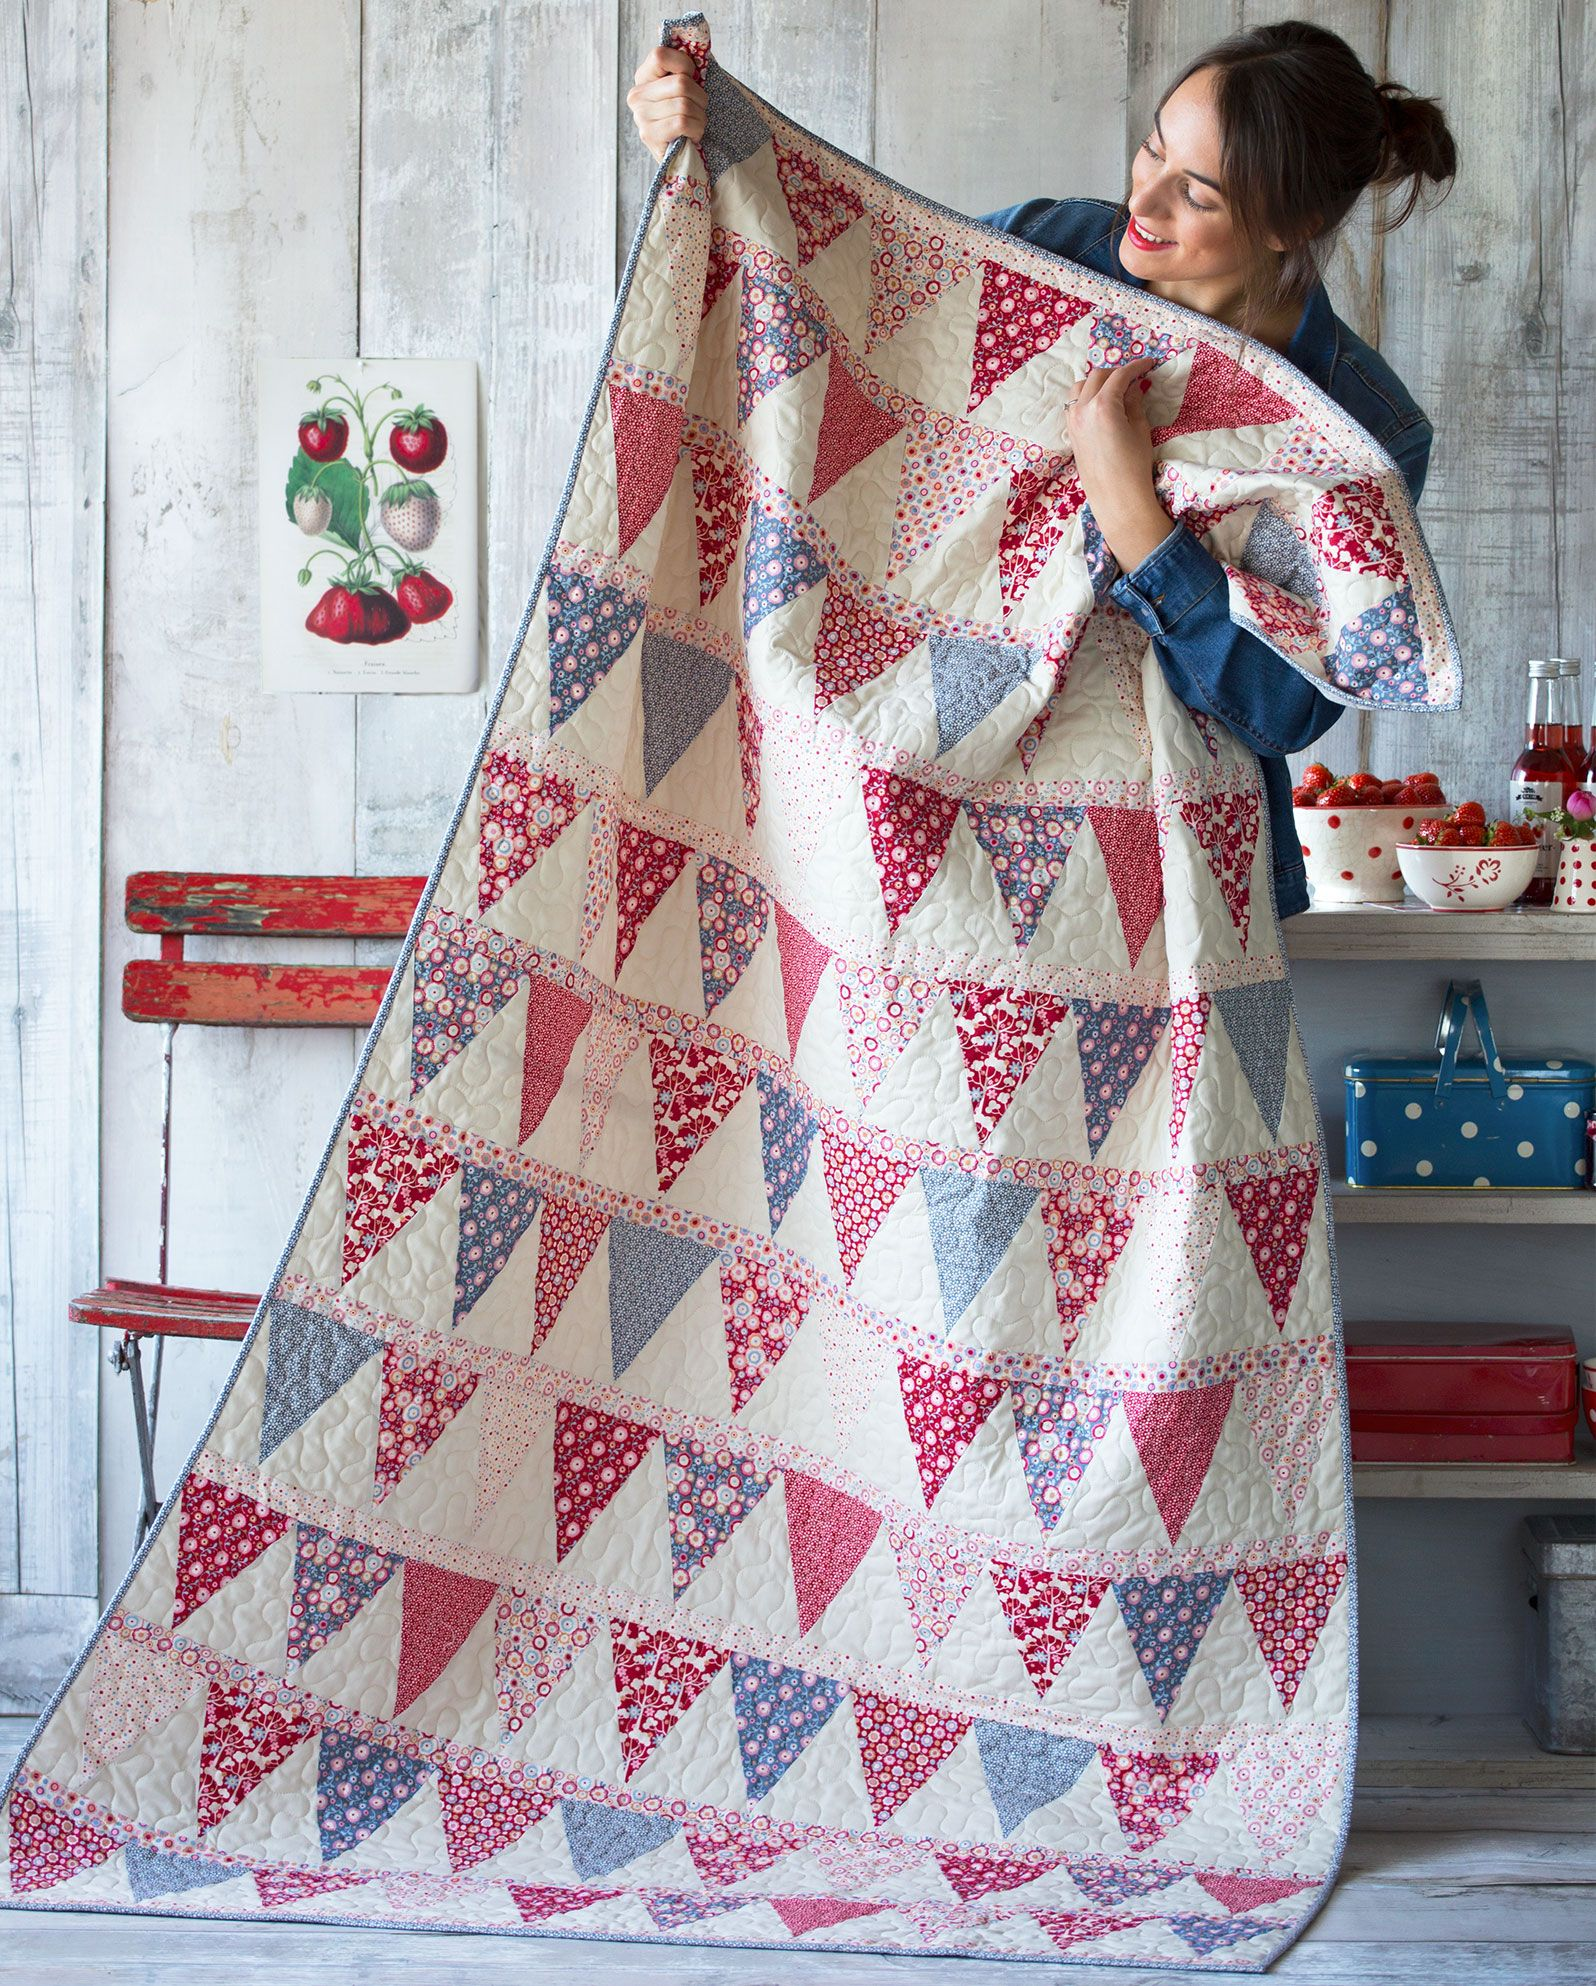 50 Free Quilting Patterns You Have To Make Quilt Quilt Patterns